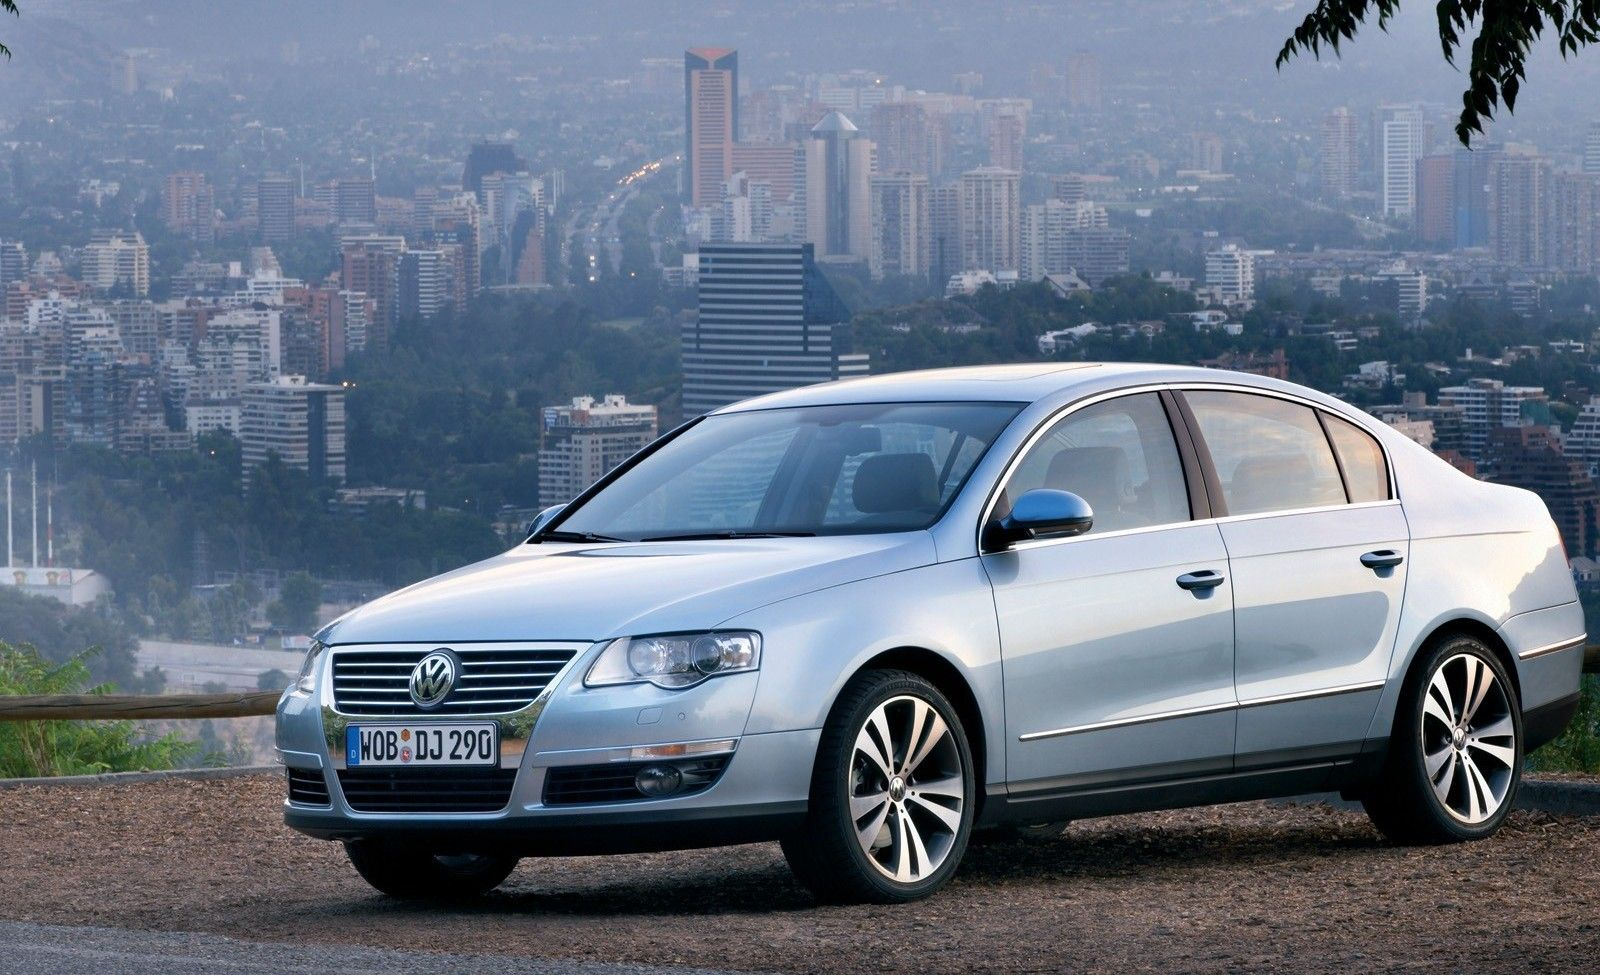 2013 Volkswagen Passat Owners Manual - http://carmanualpdf.com/2013-